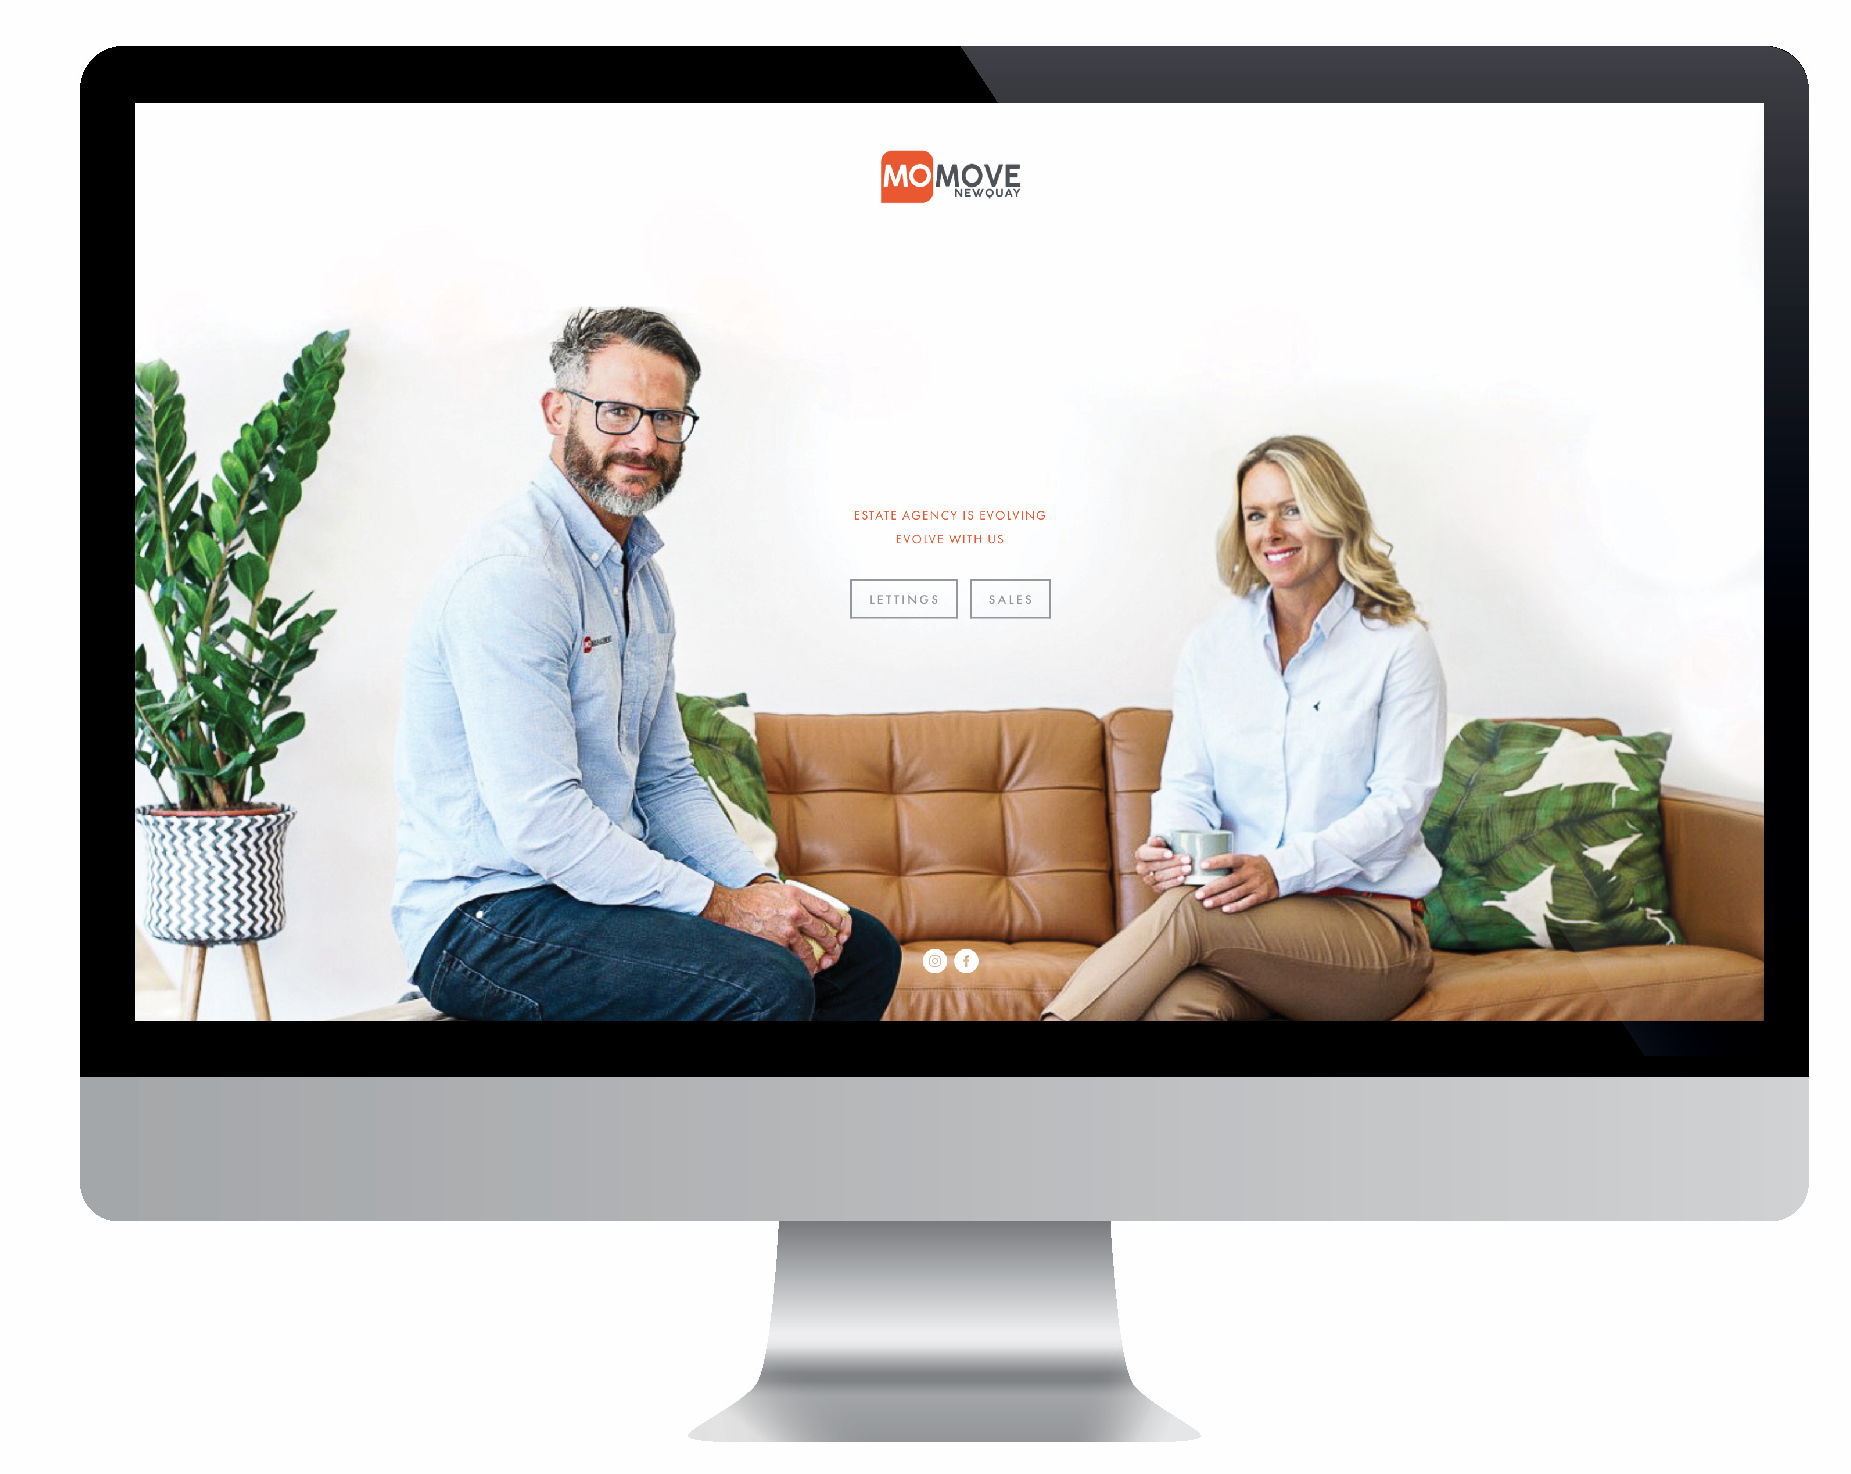 WEBSITE DESIGN BY MELONMADE